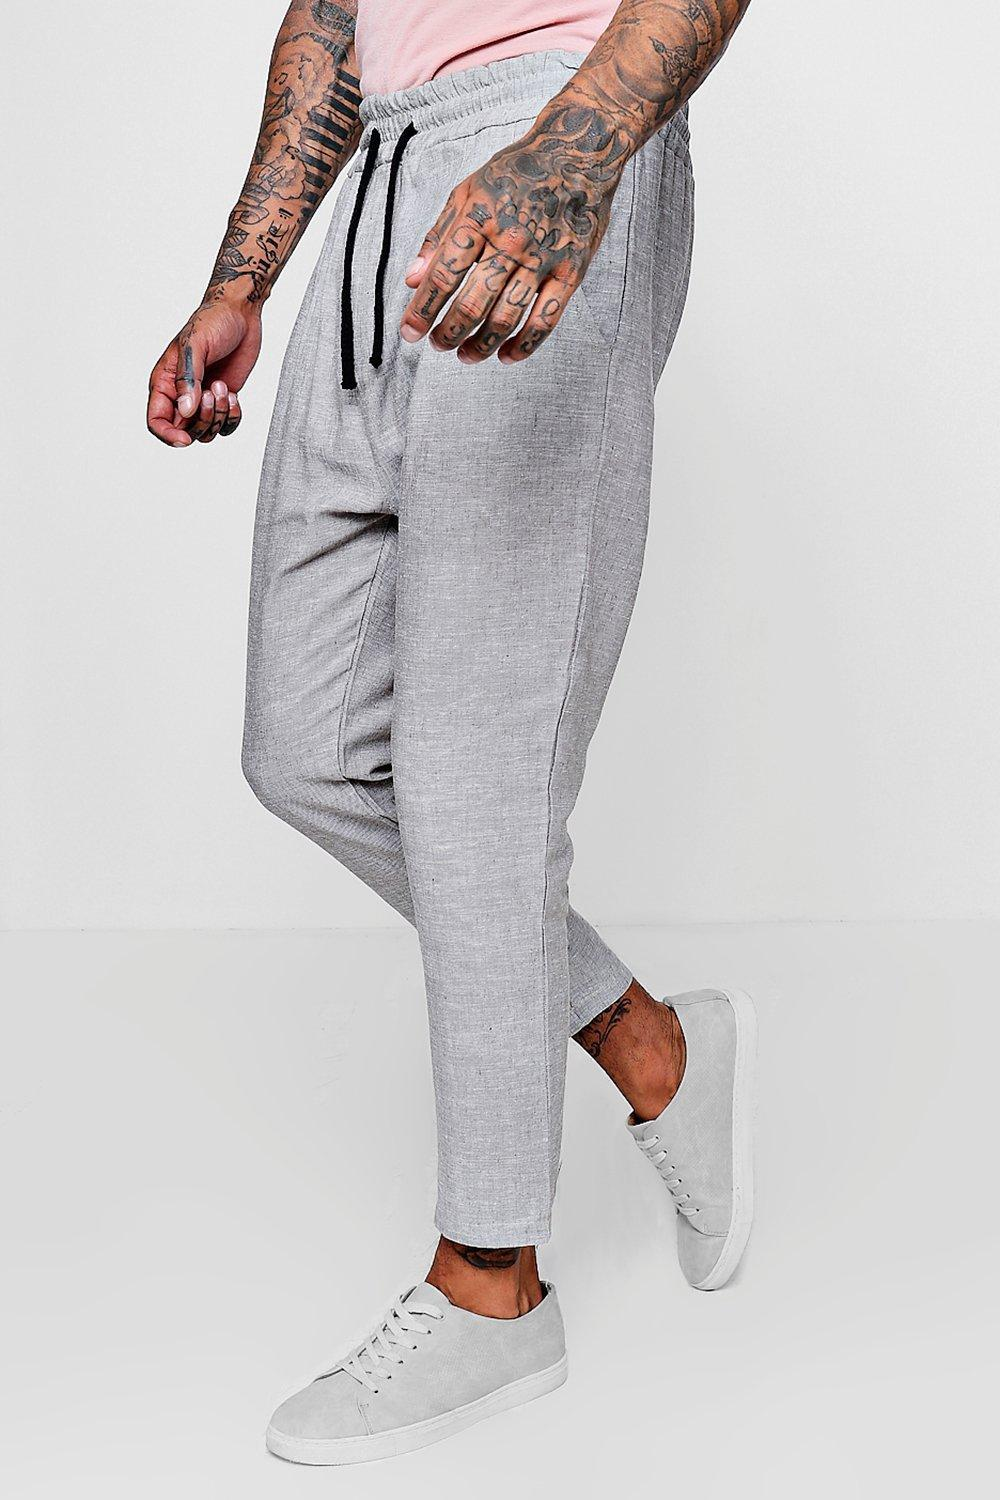 b7bacfb7a68b Boohoo 100% Linen Drawstring Jogger Style Trouser in Gray for Men - Lyst